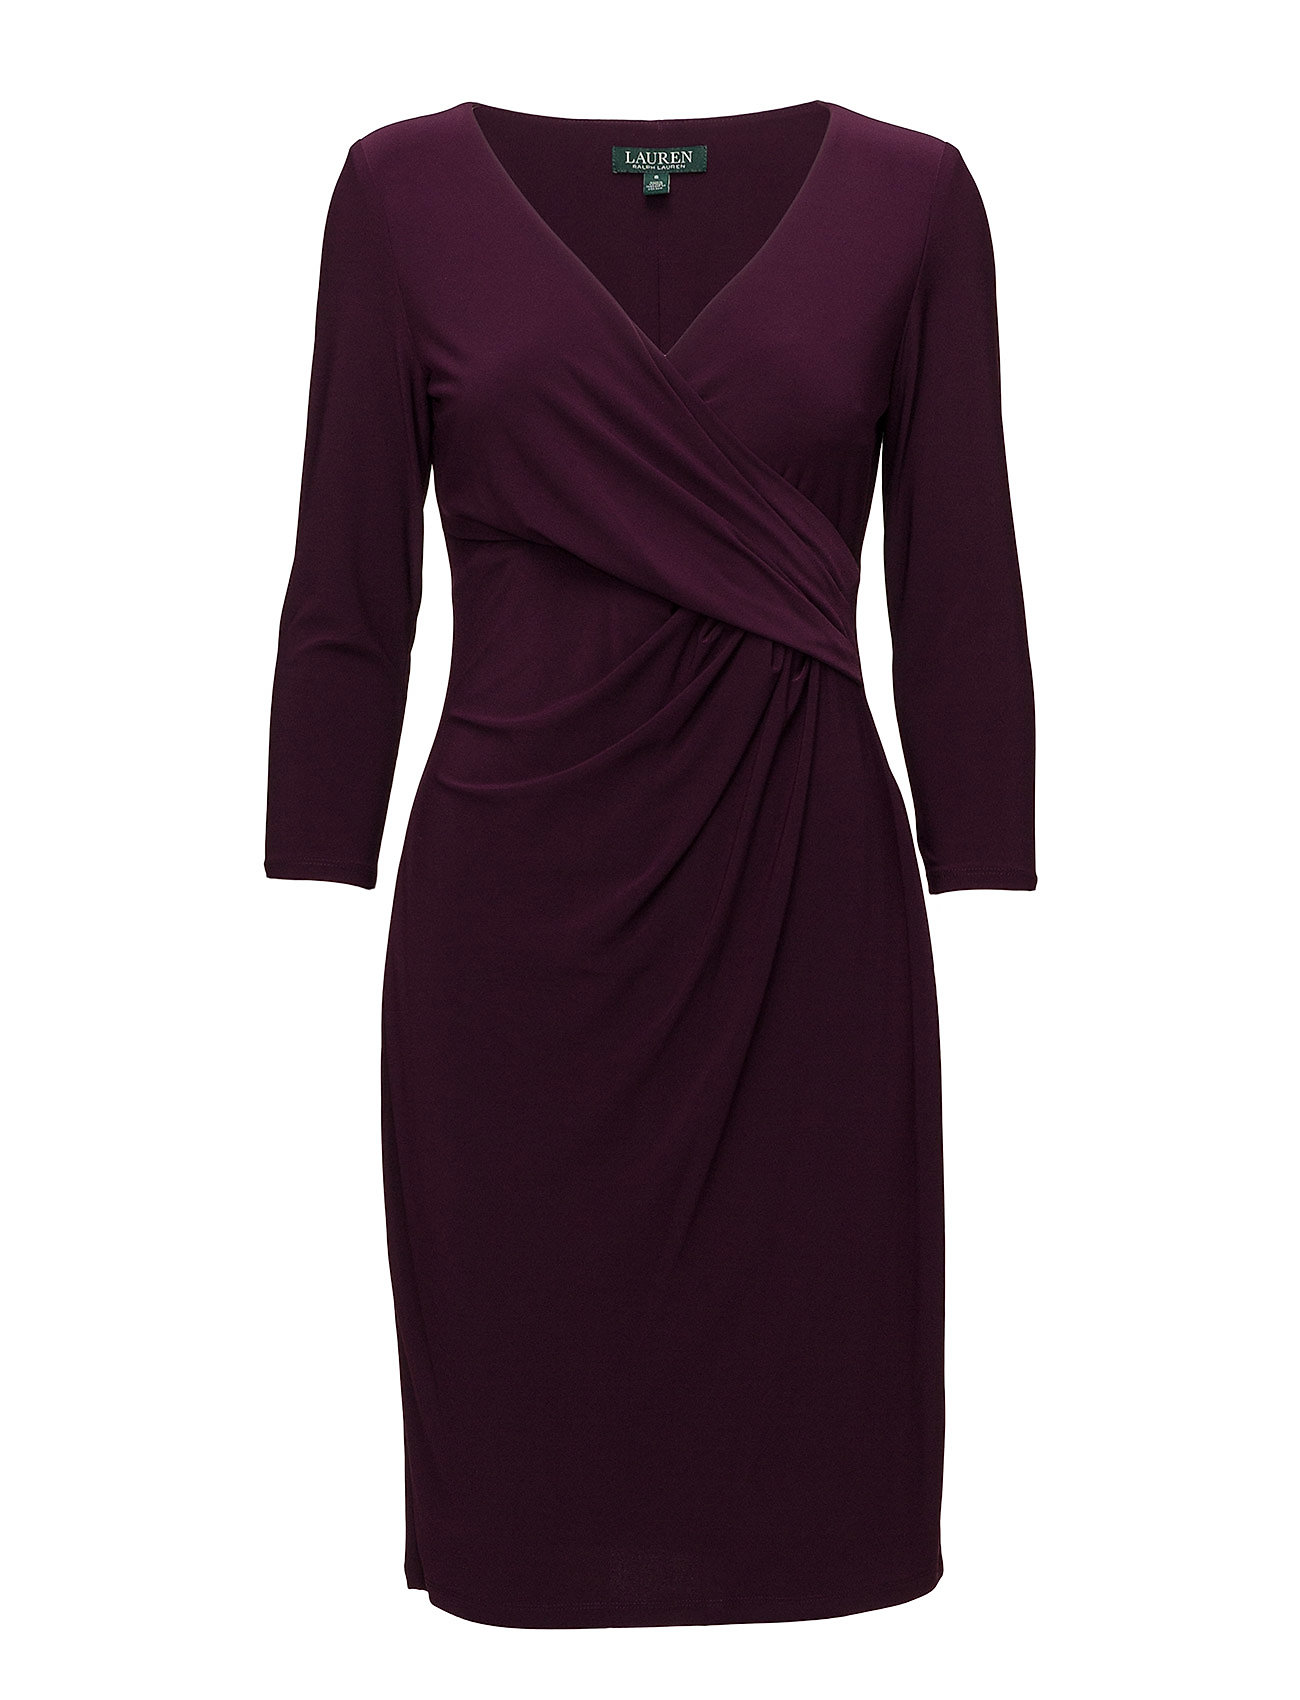 cec42a439c Surplice Jersey Dress (Passion Plum) (95.40 €) - Lauren Ralph Lauren ...